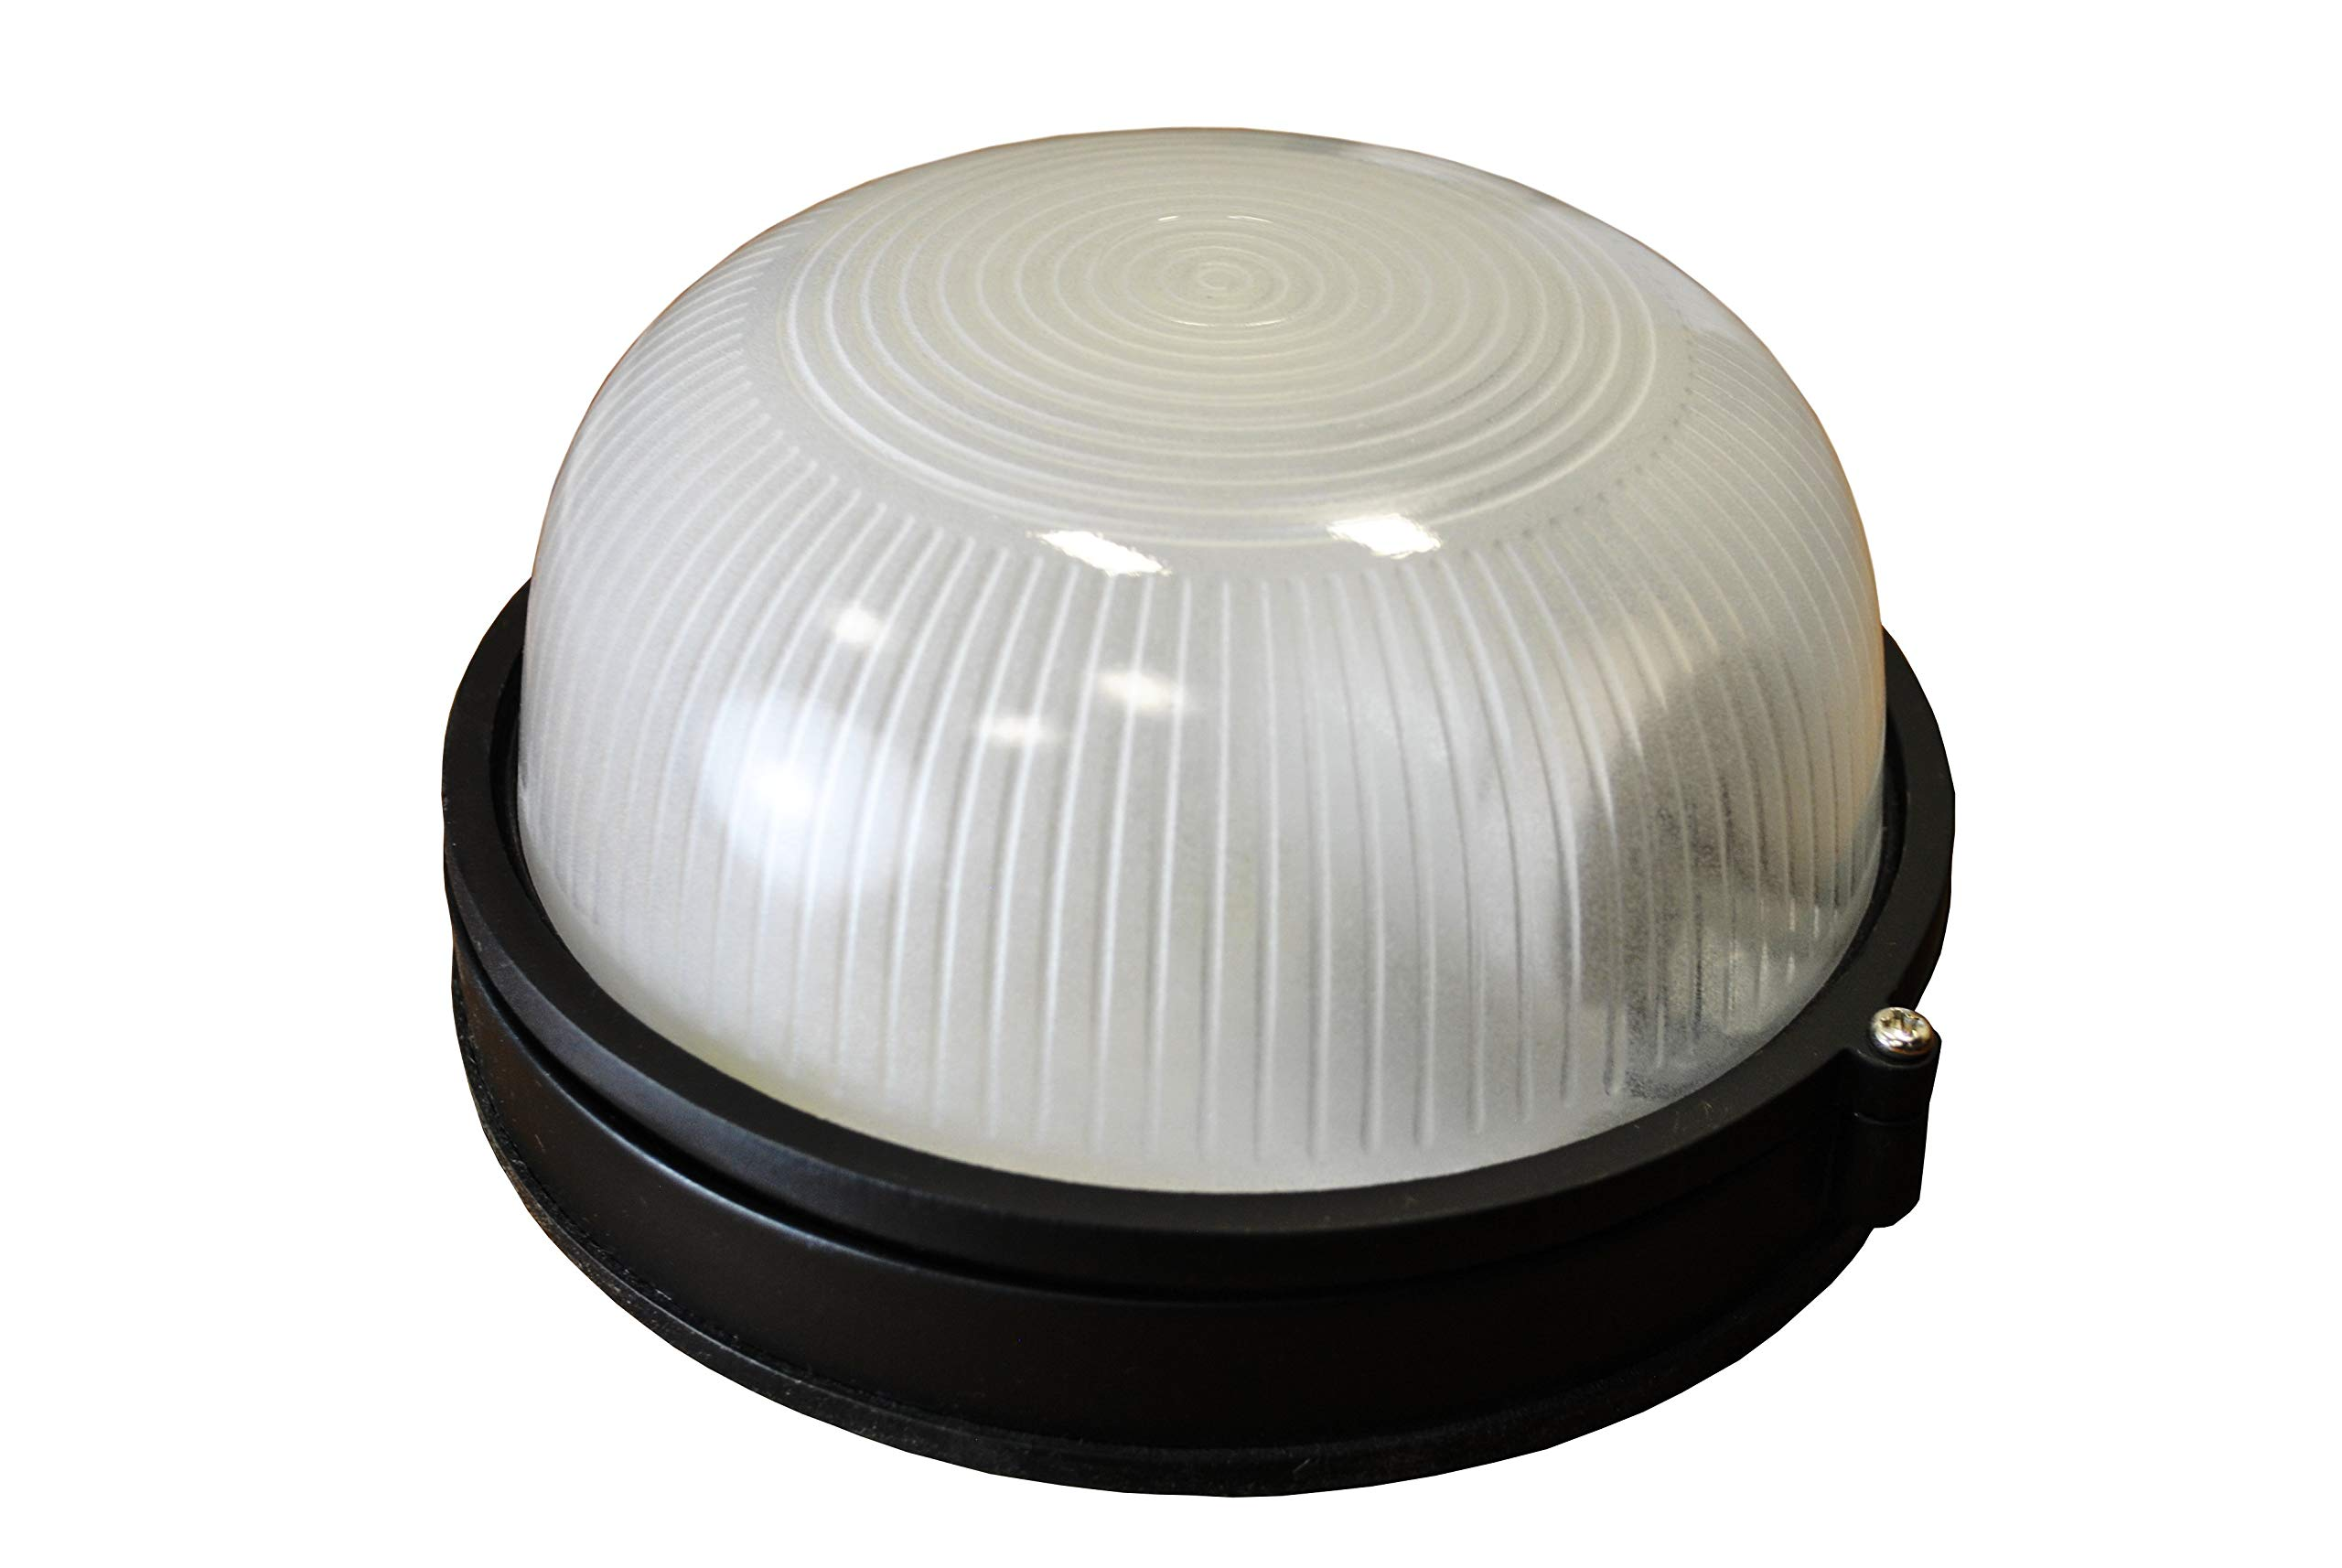 Heaters4Saunas Round Sauna Light- Explosion Proof Sauna Light by Northern Lights Group